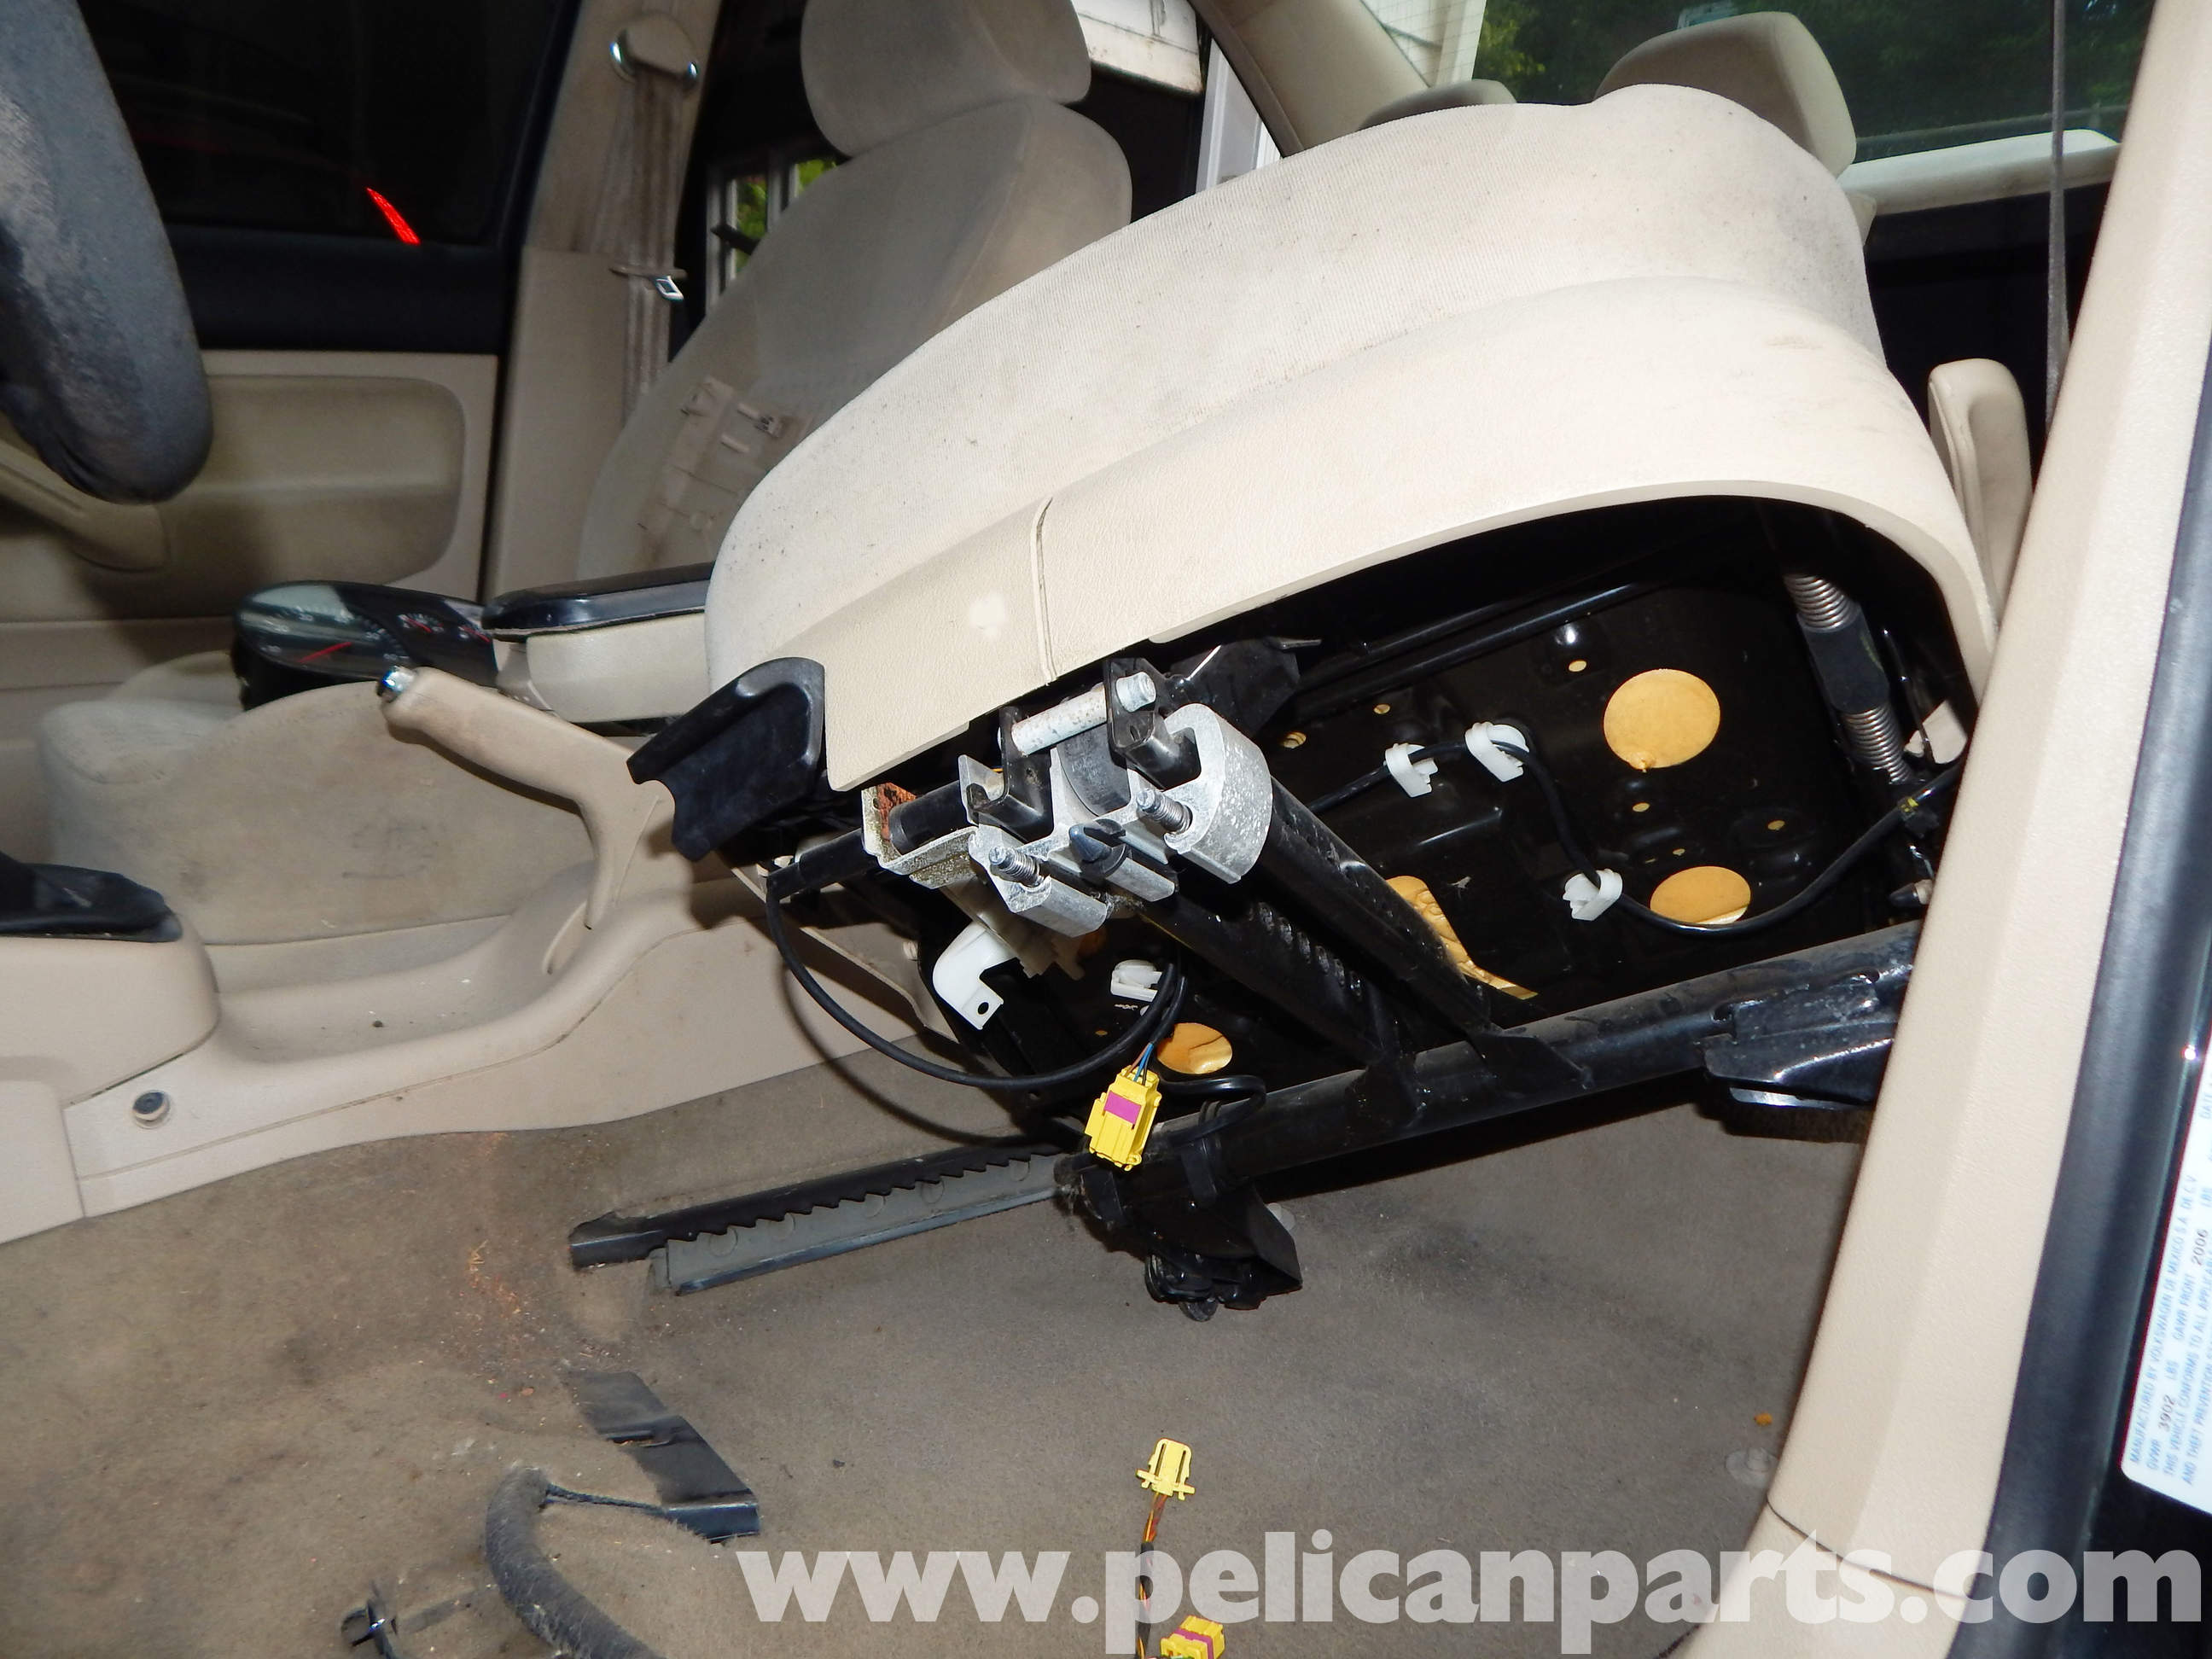 Pelican technical article volkswagen jetta mkiv front seat removal for Vw jetta interior replacement parts